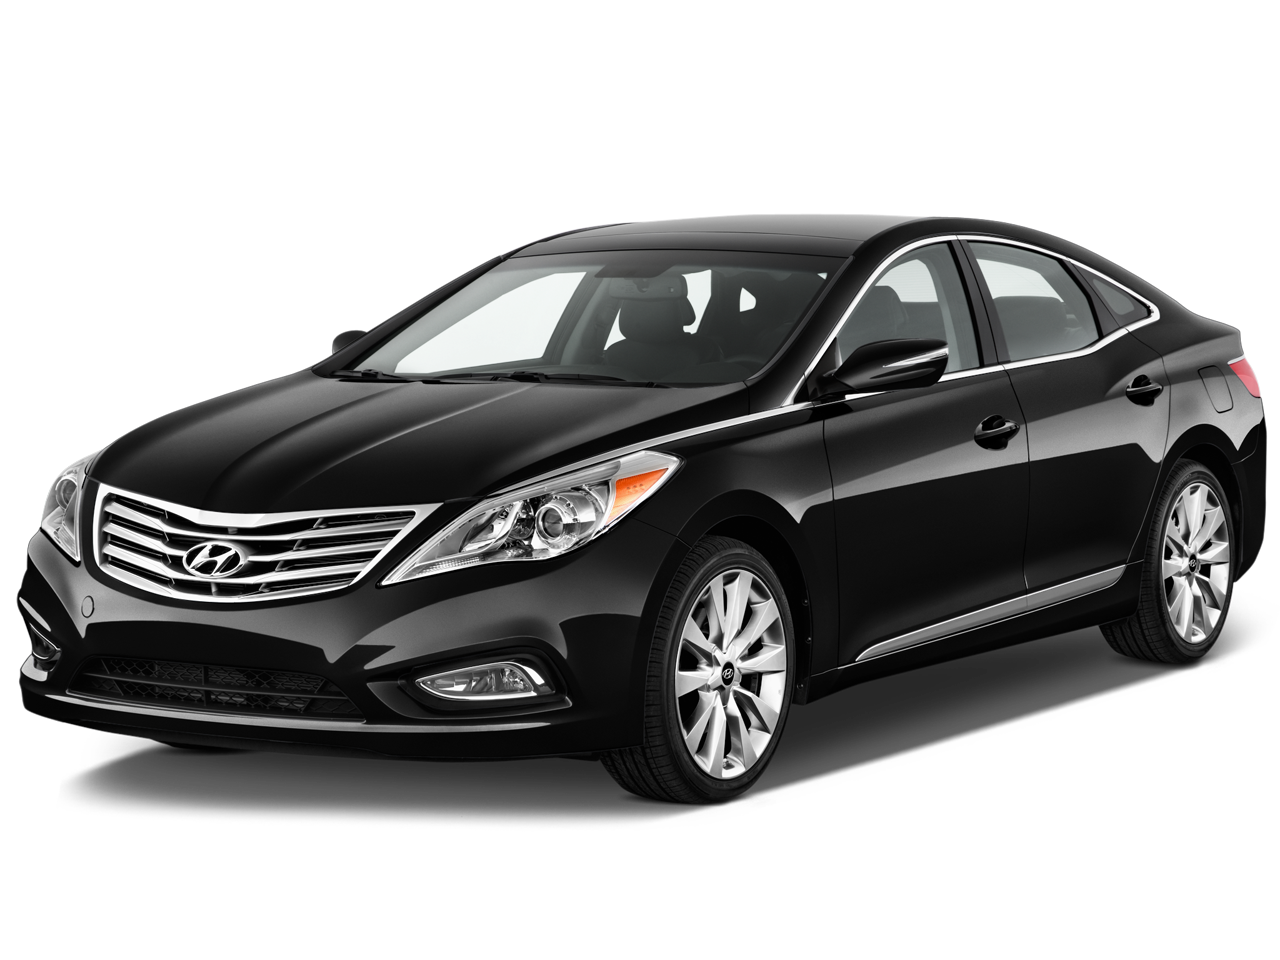 news front hyundai car view brand azera